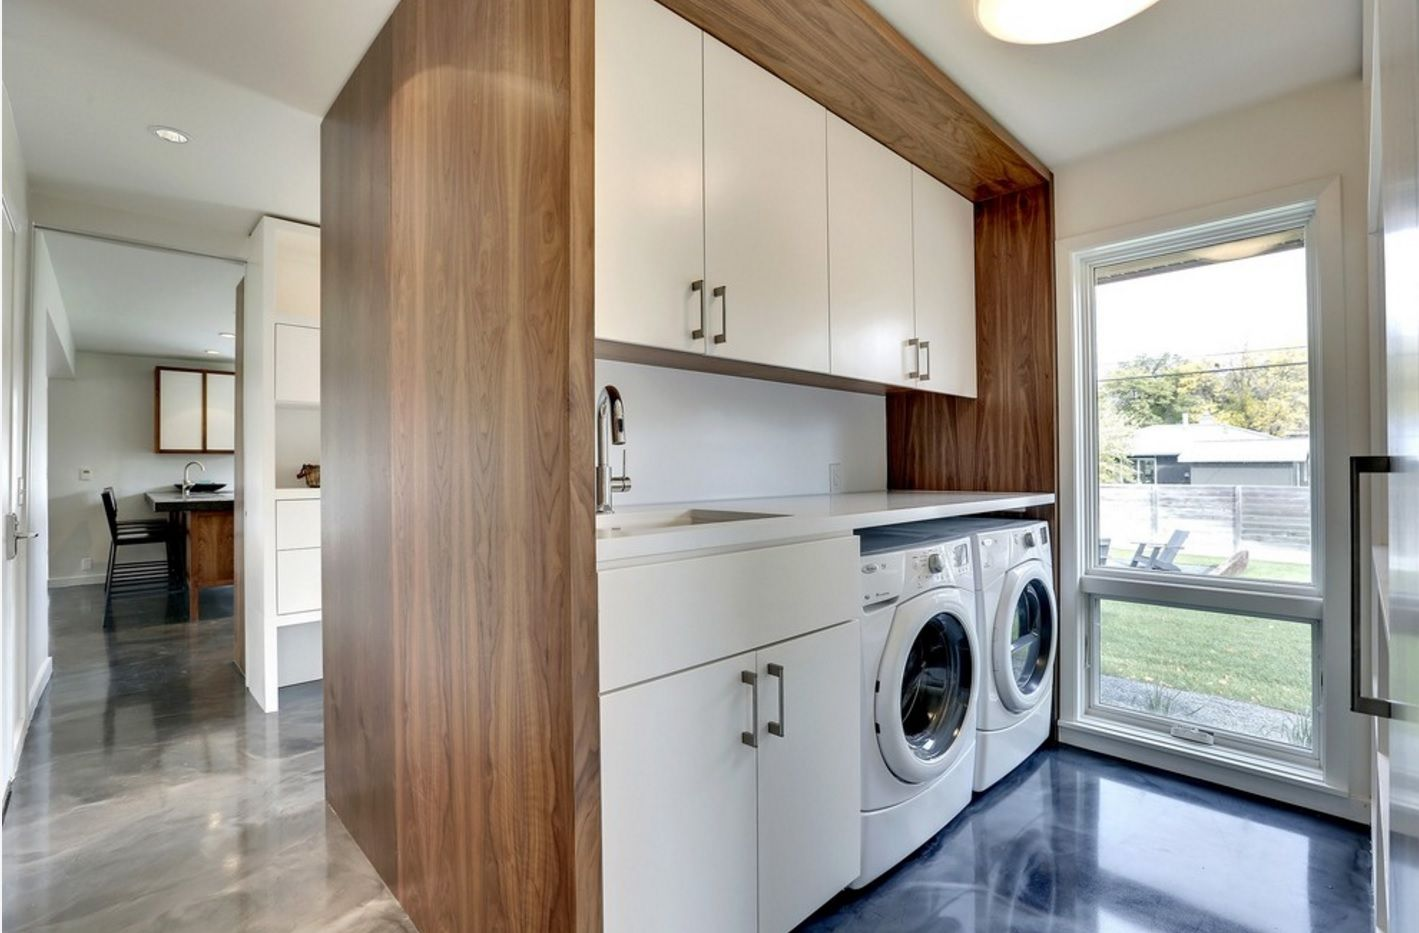 Laundry Allocation Options For Modern Home Interior. Special Zoning Among  The Other Spaces And Rooms